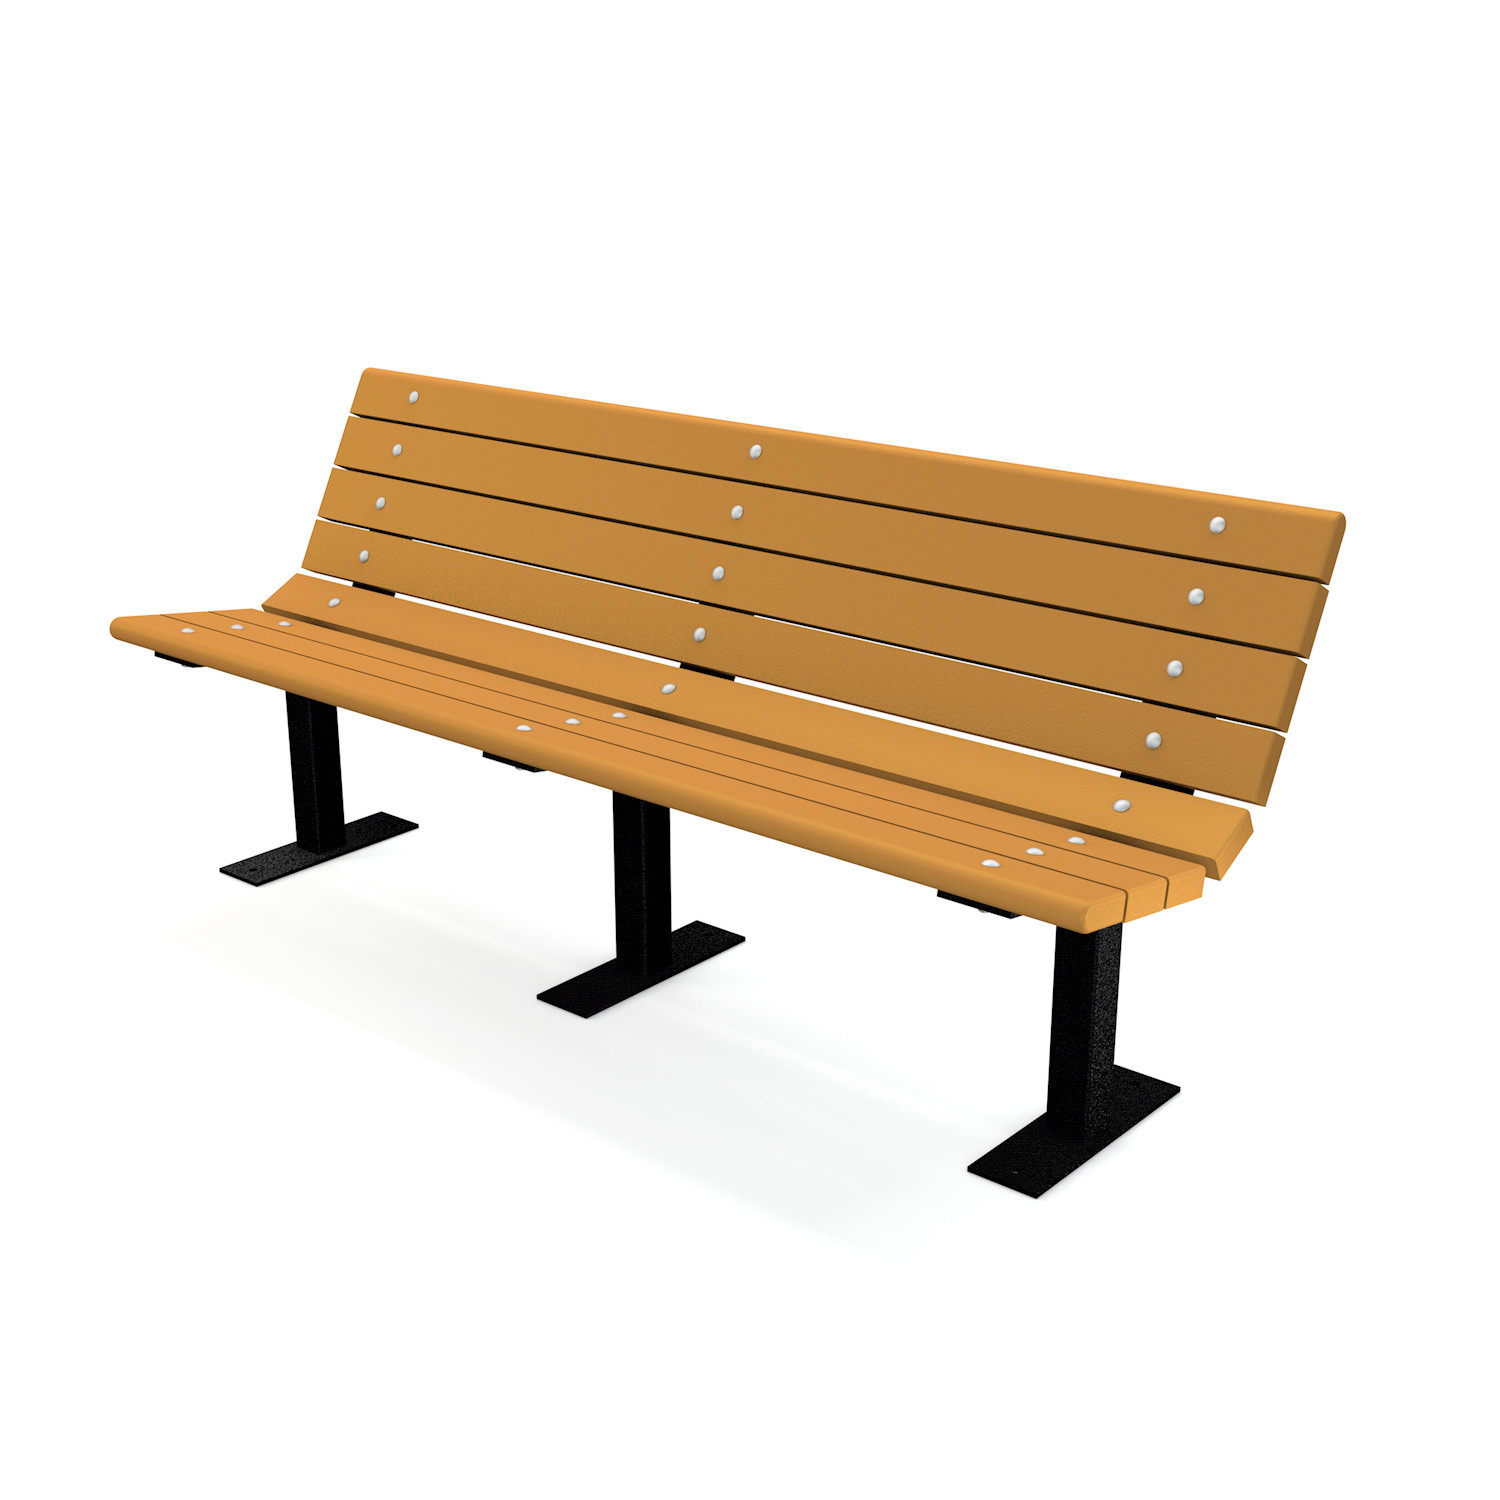 Contour Recycled Plastic Bench with Steel Frame - 6FT